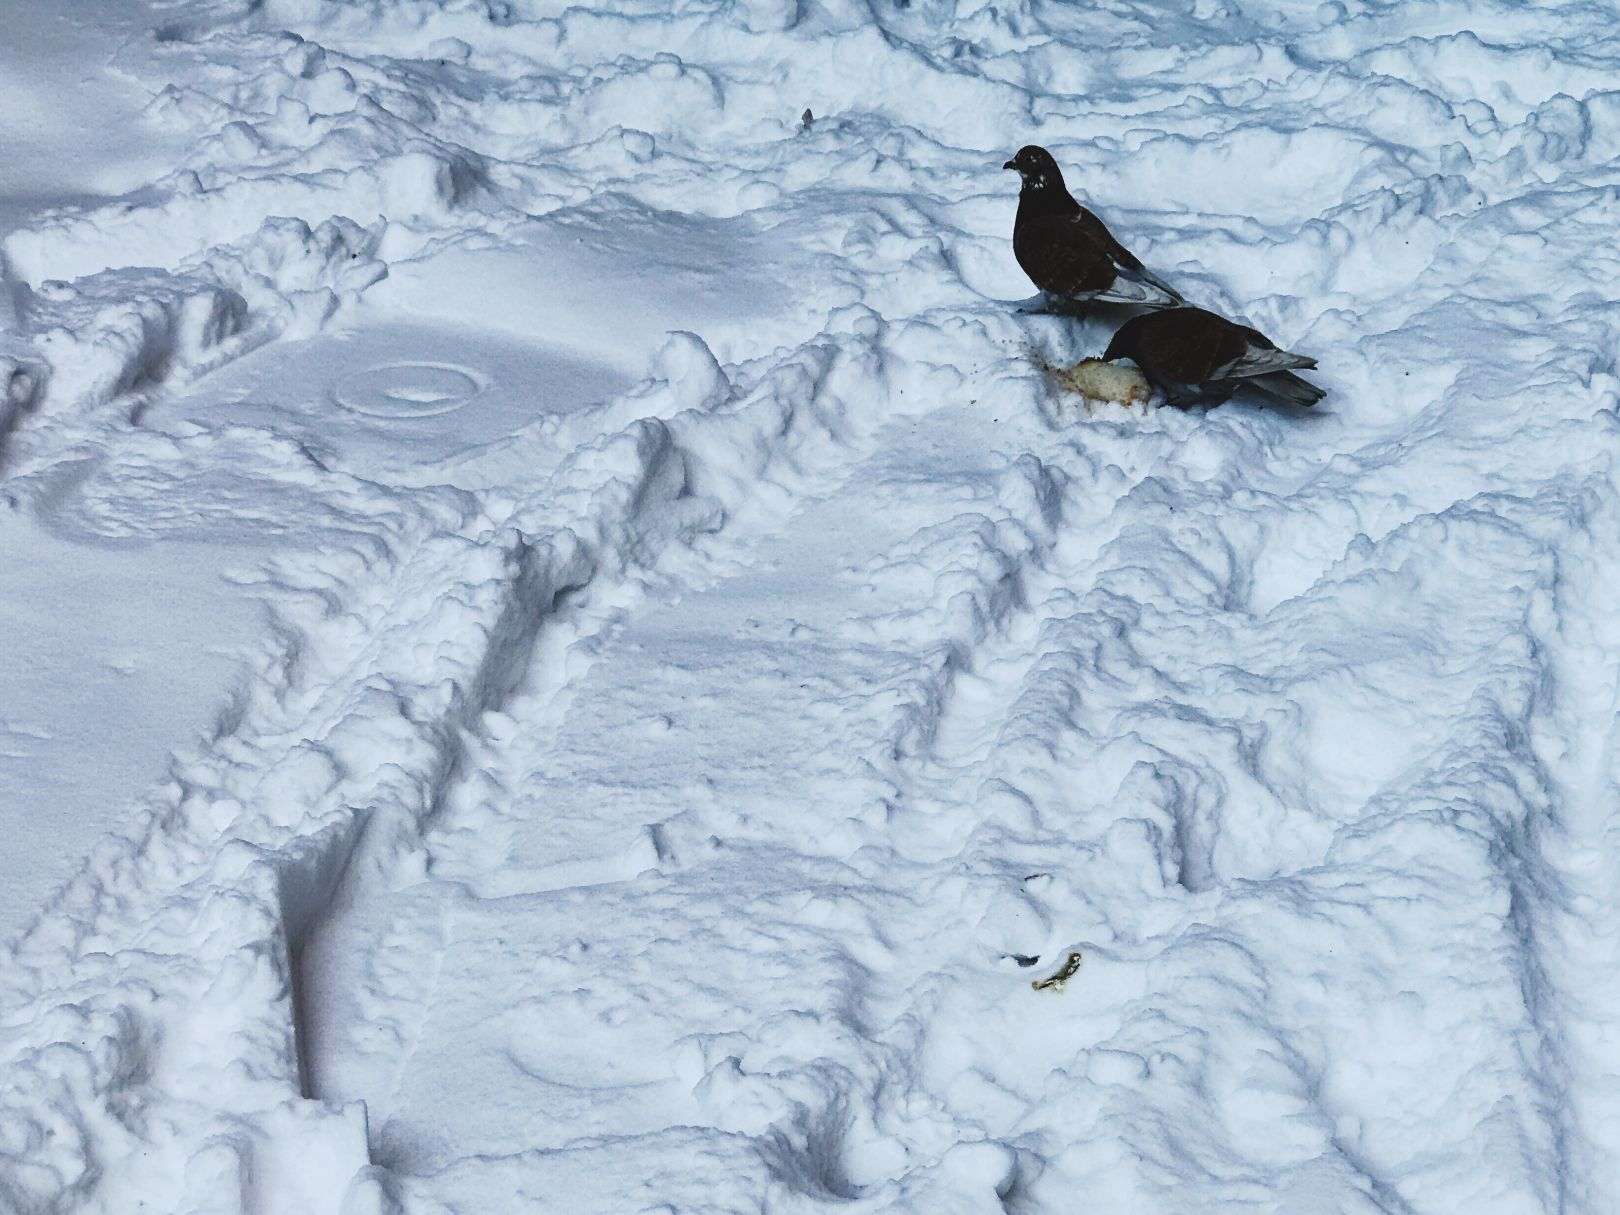 A photo depicting Two birds in some snow tracks